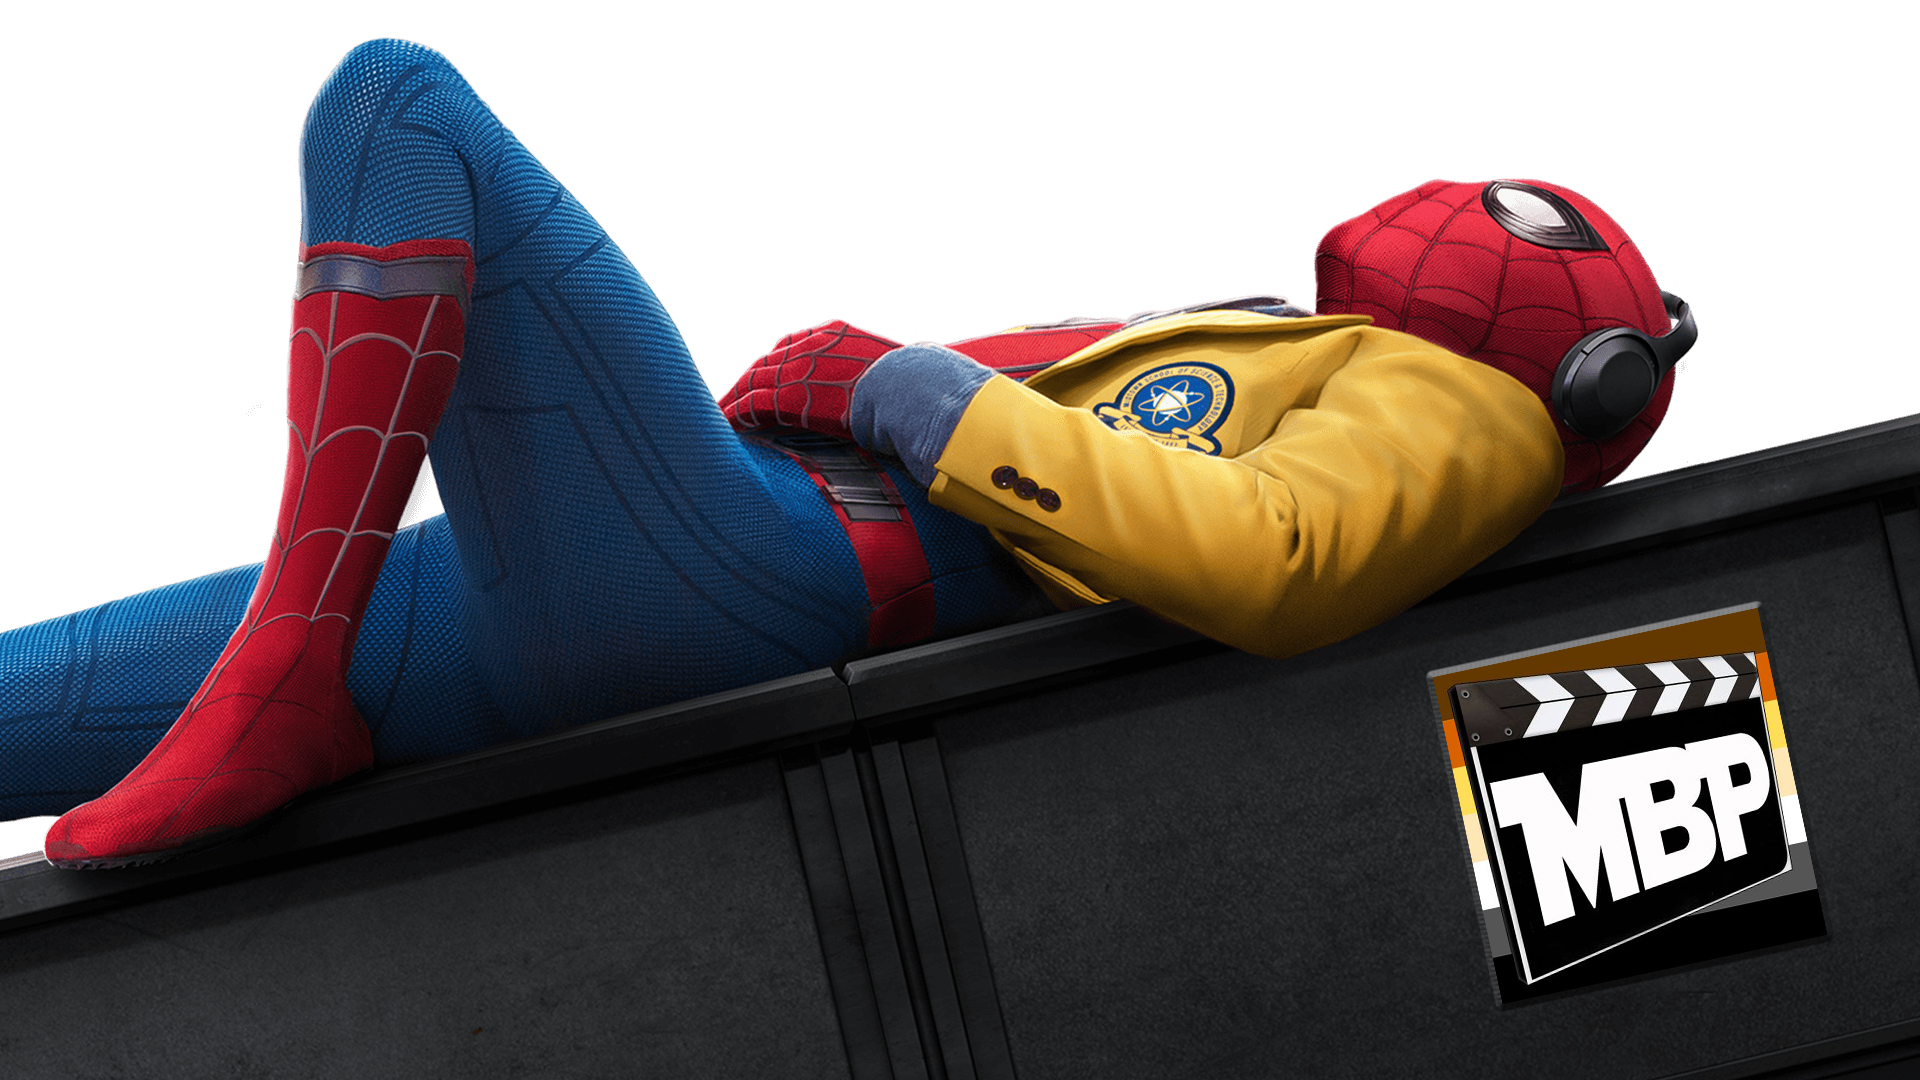 MBP e241 - 'Spider-Man: Homecoming' (7/14/17)    Spider-Man, Spider-Man, does whatever a spider can. But can this spider survive its third reboot attempt in the modern era of superhero films? Click through to listen as we review 'Spider-Man: Homecoming.'